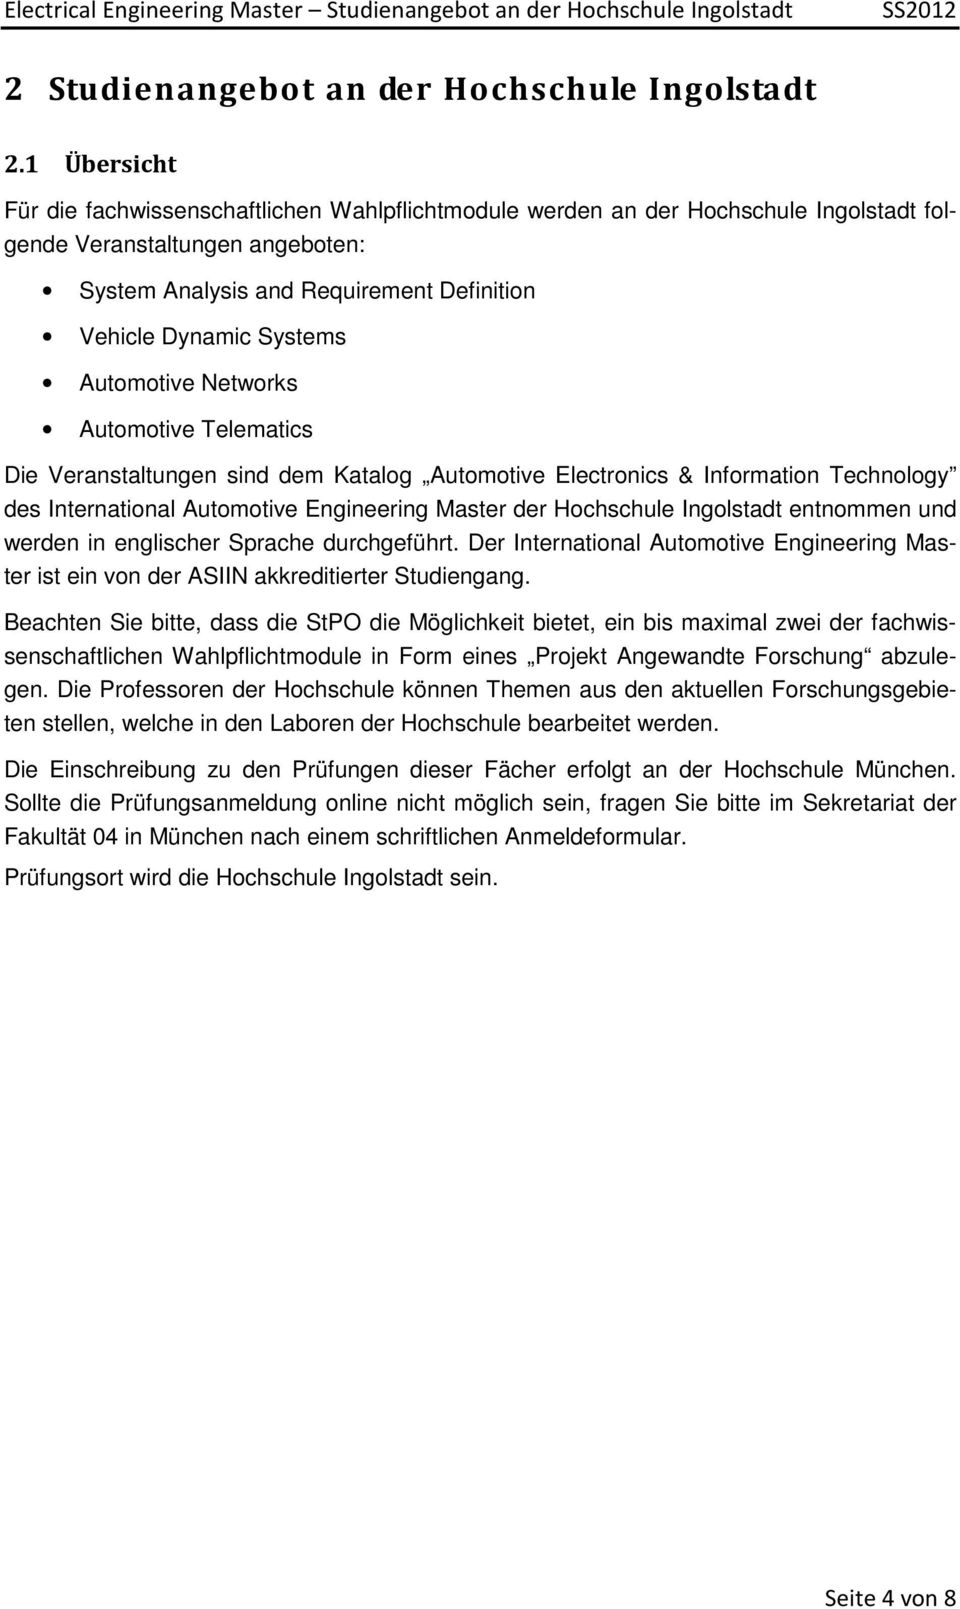 Automotive Networks Automotive Telematics Die Veranstaltungen sind dem Katalog Automotive Electronics & Information Technology des International Automotive Engineering Master der Hochschule